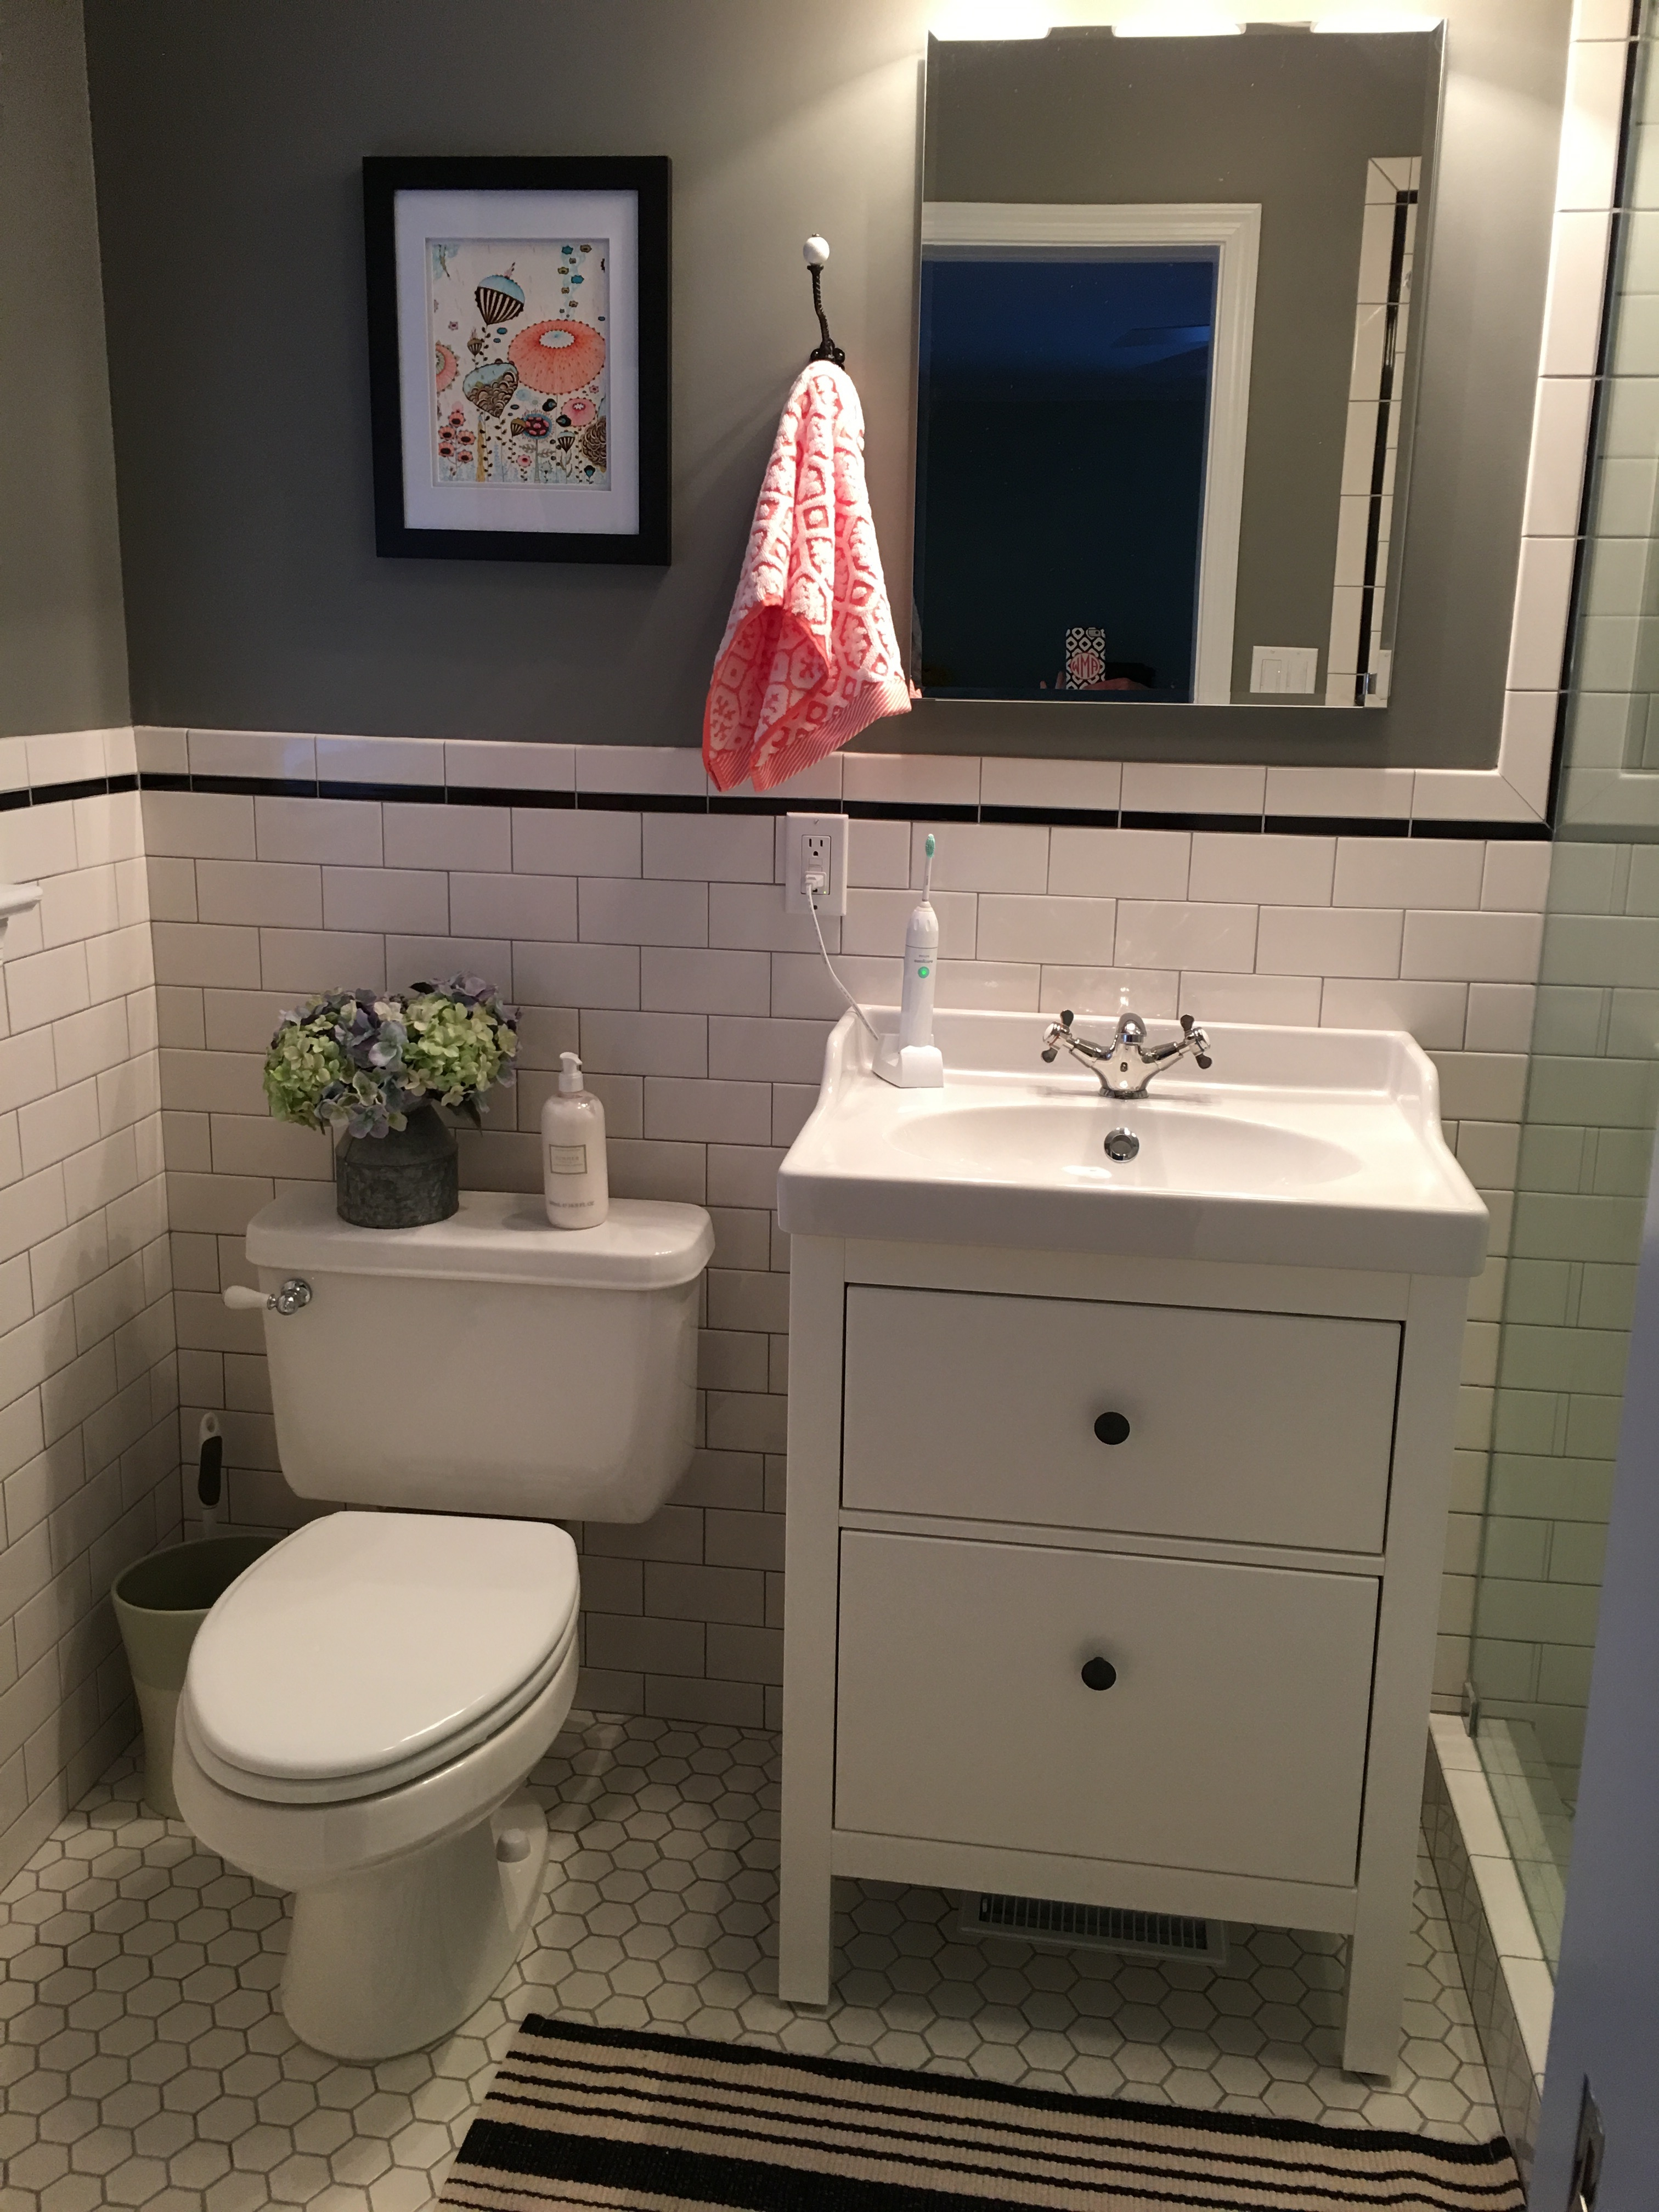 Ikea Bathroom Sinks For Small Spaces